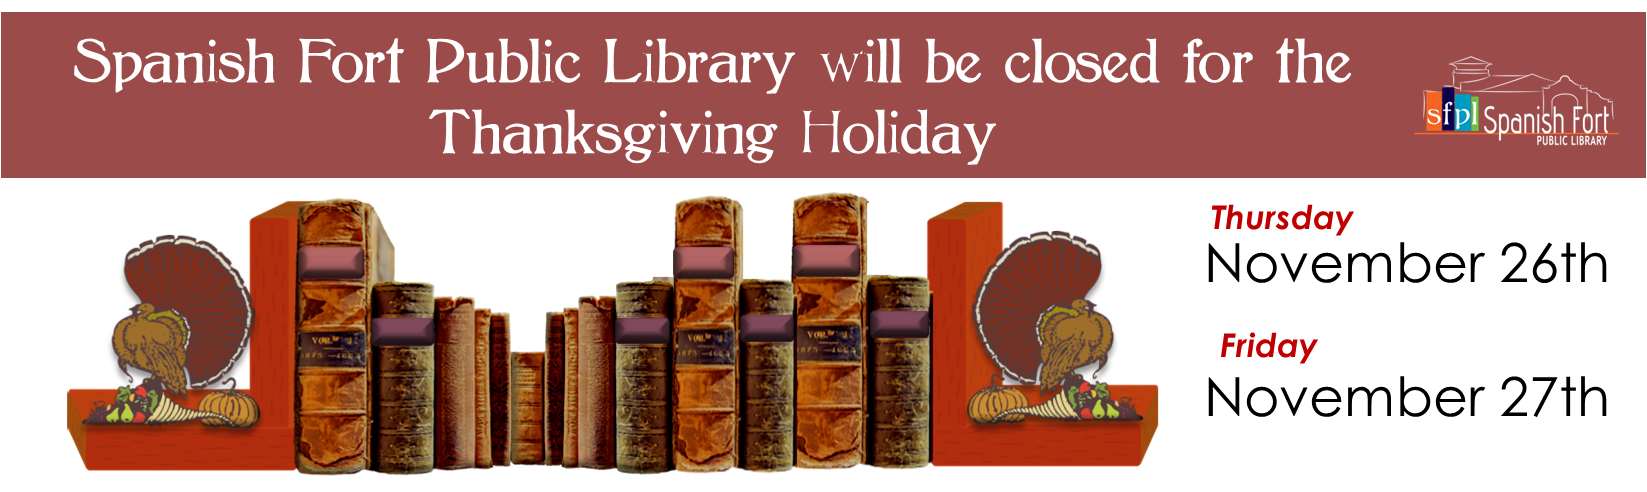 Spanish Fort Public Library will be closed for the Thanksgiving Holiday Thursday, November 26th, and Friday November, 27th.